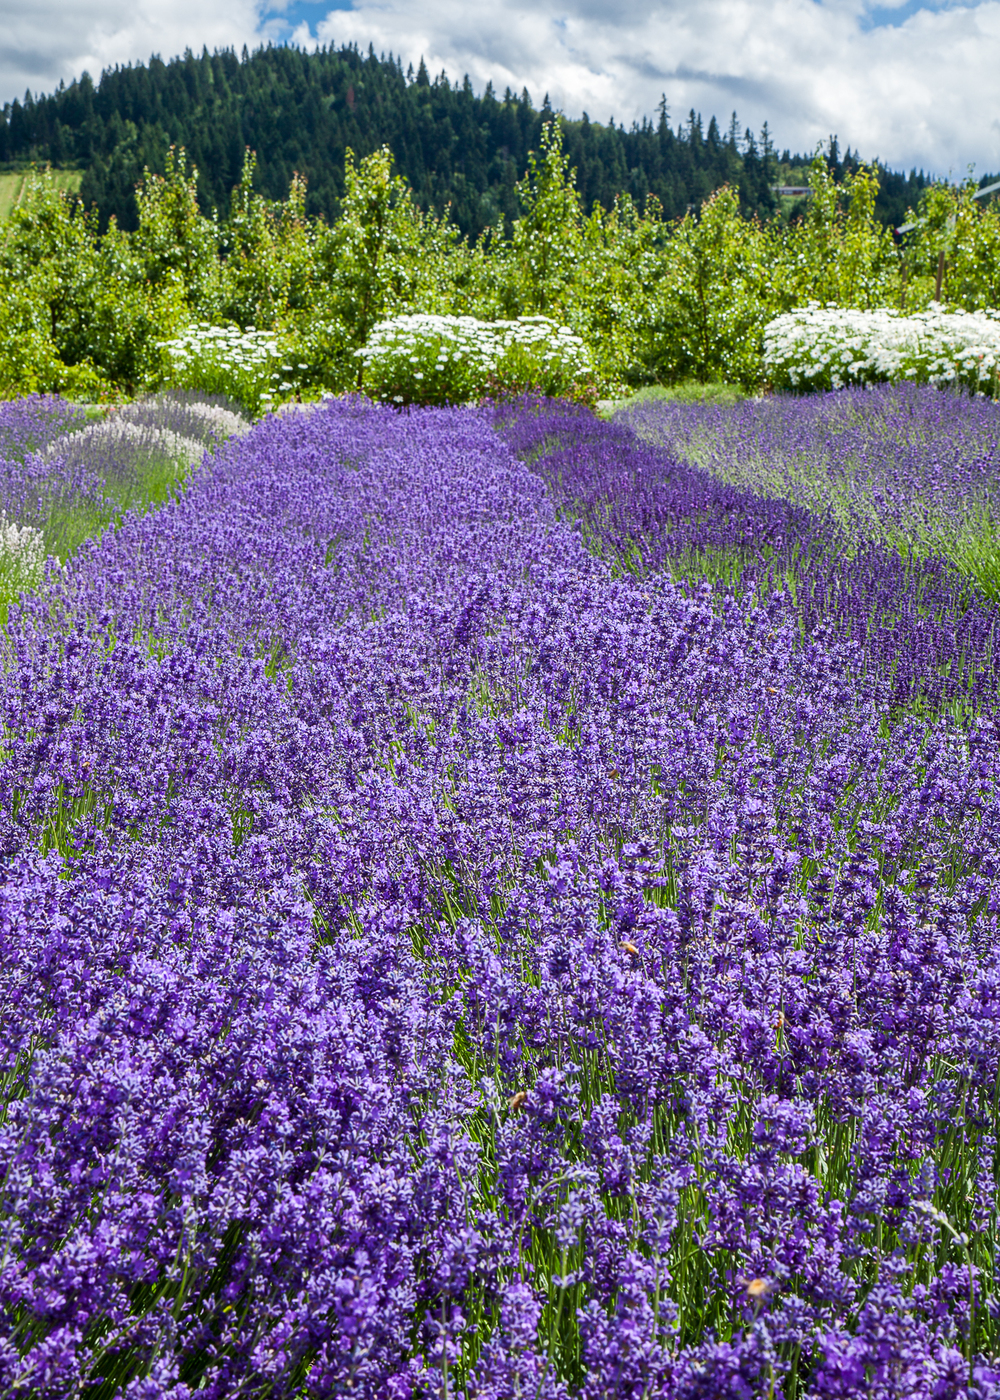 Rows of lavender, at the lavender farm.